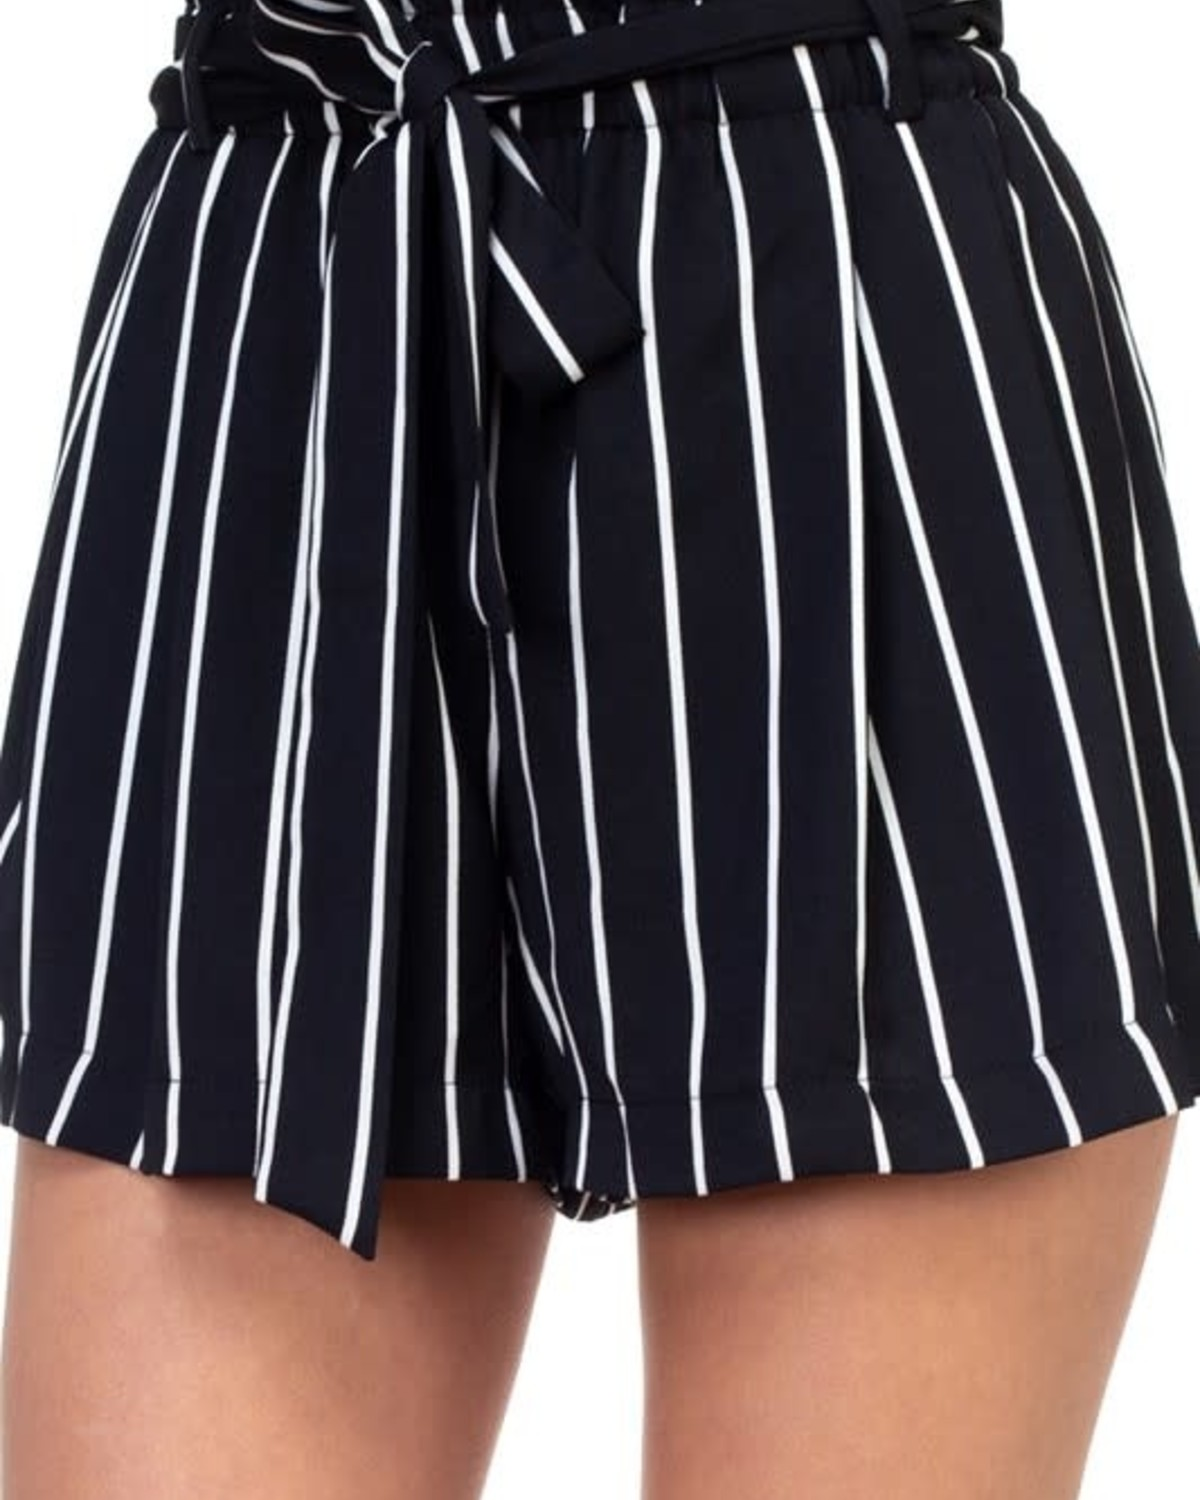 Get Going Striped Shorts